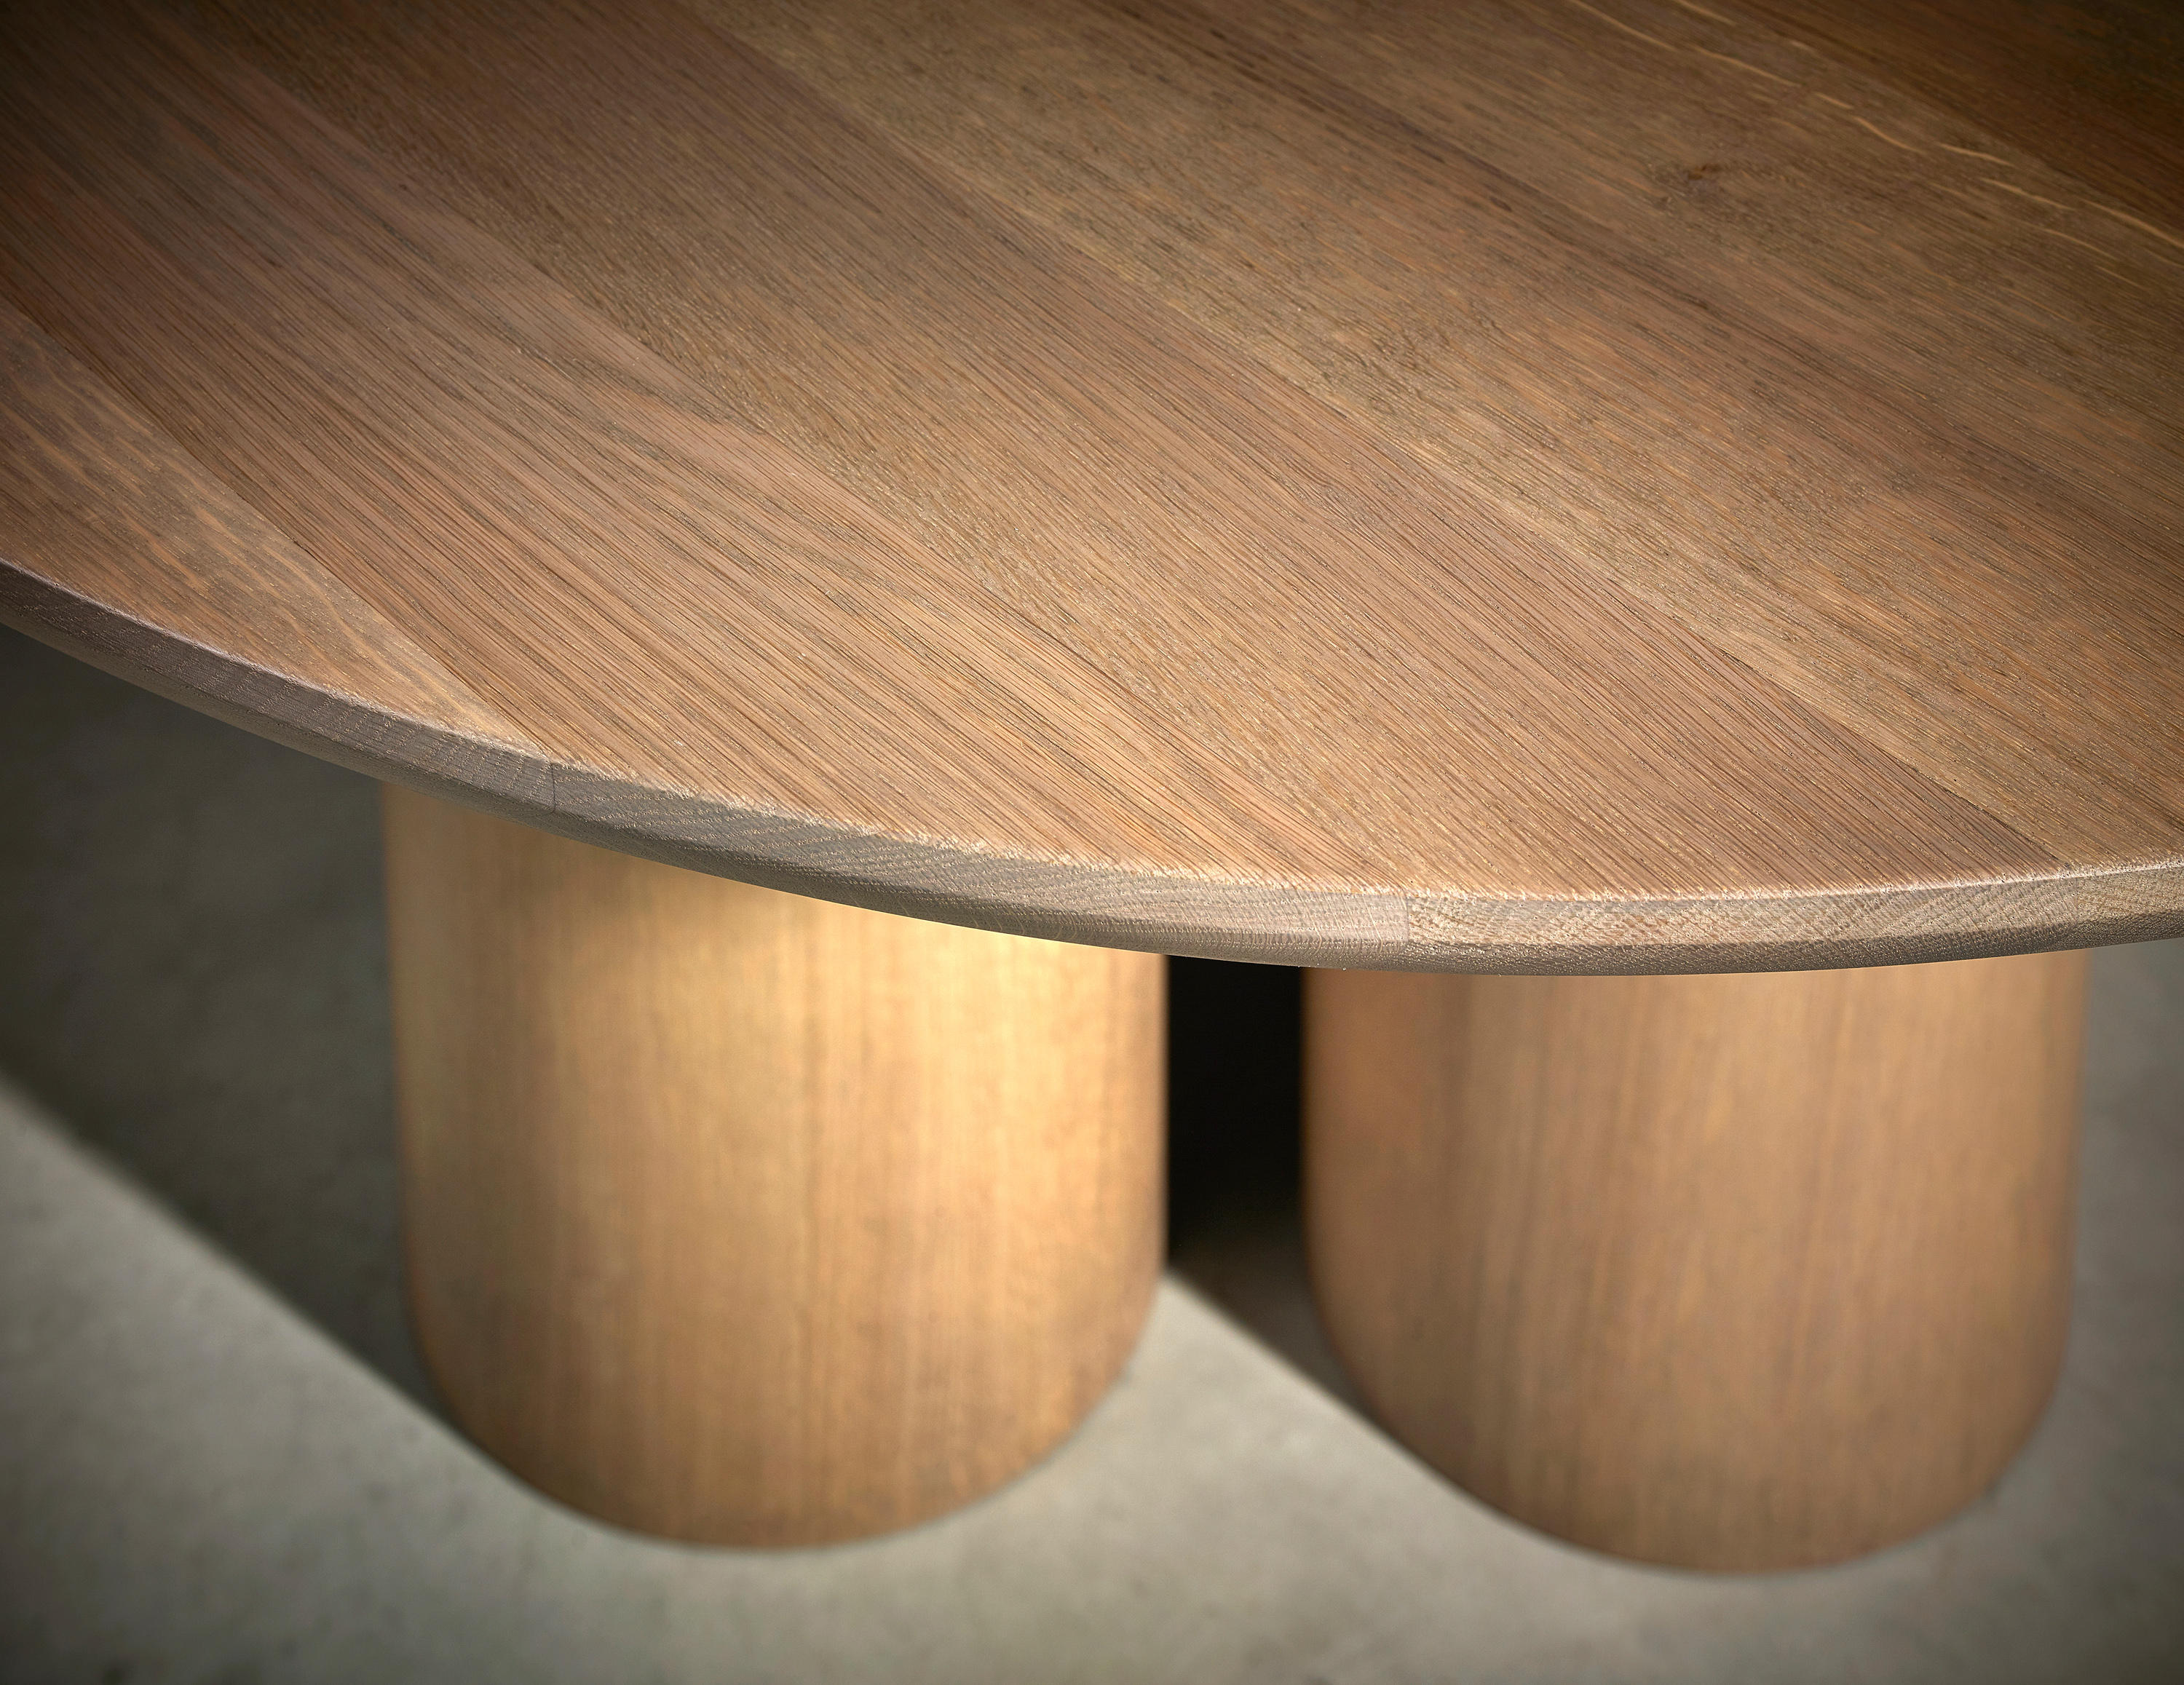 OLLE TABLE - Dining tables from Piet Boon | Architonic